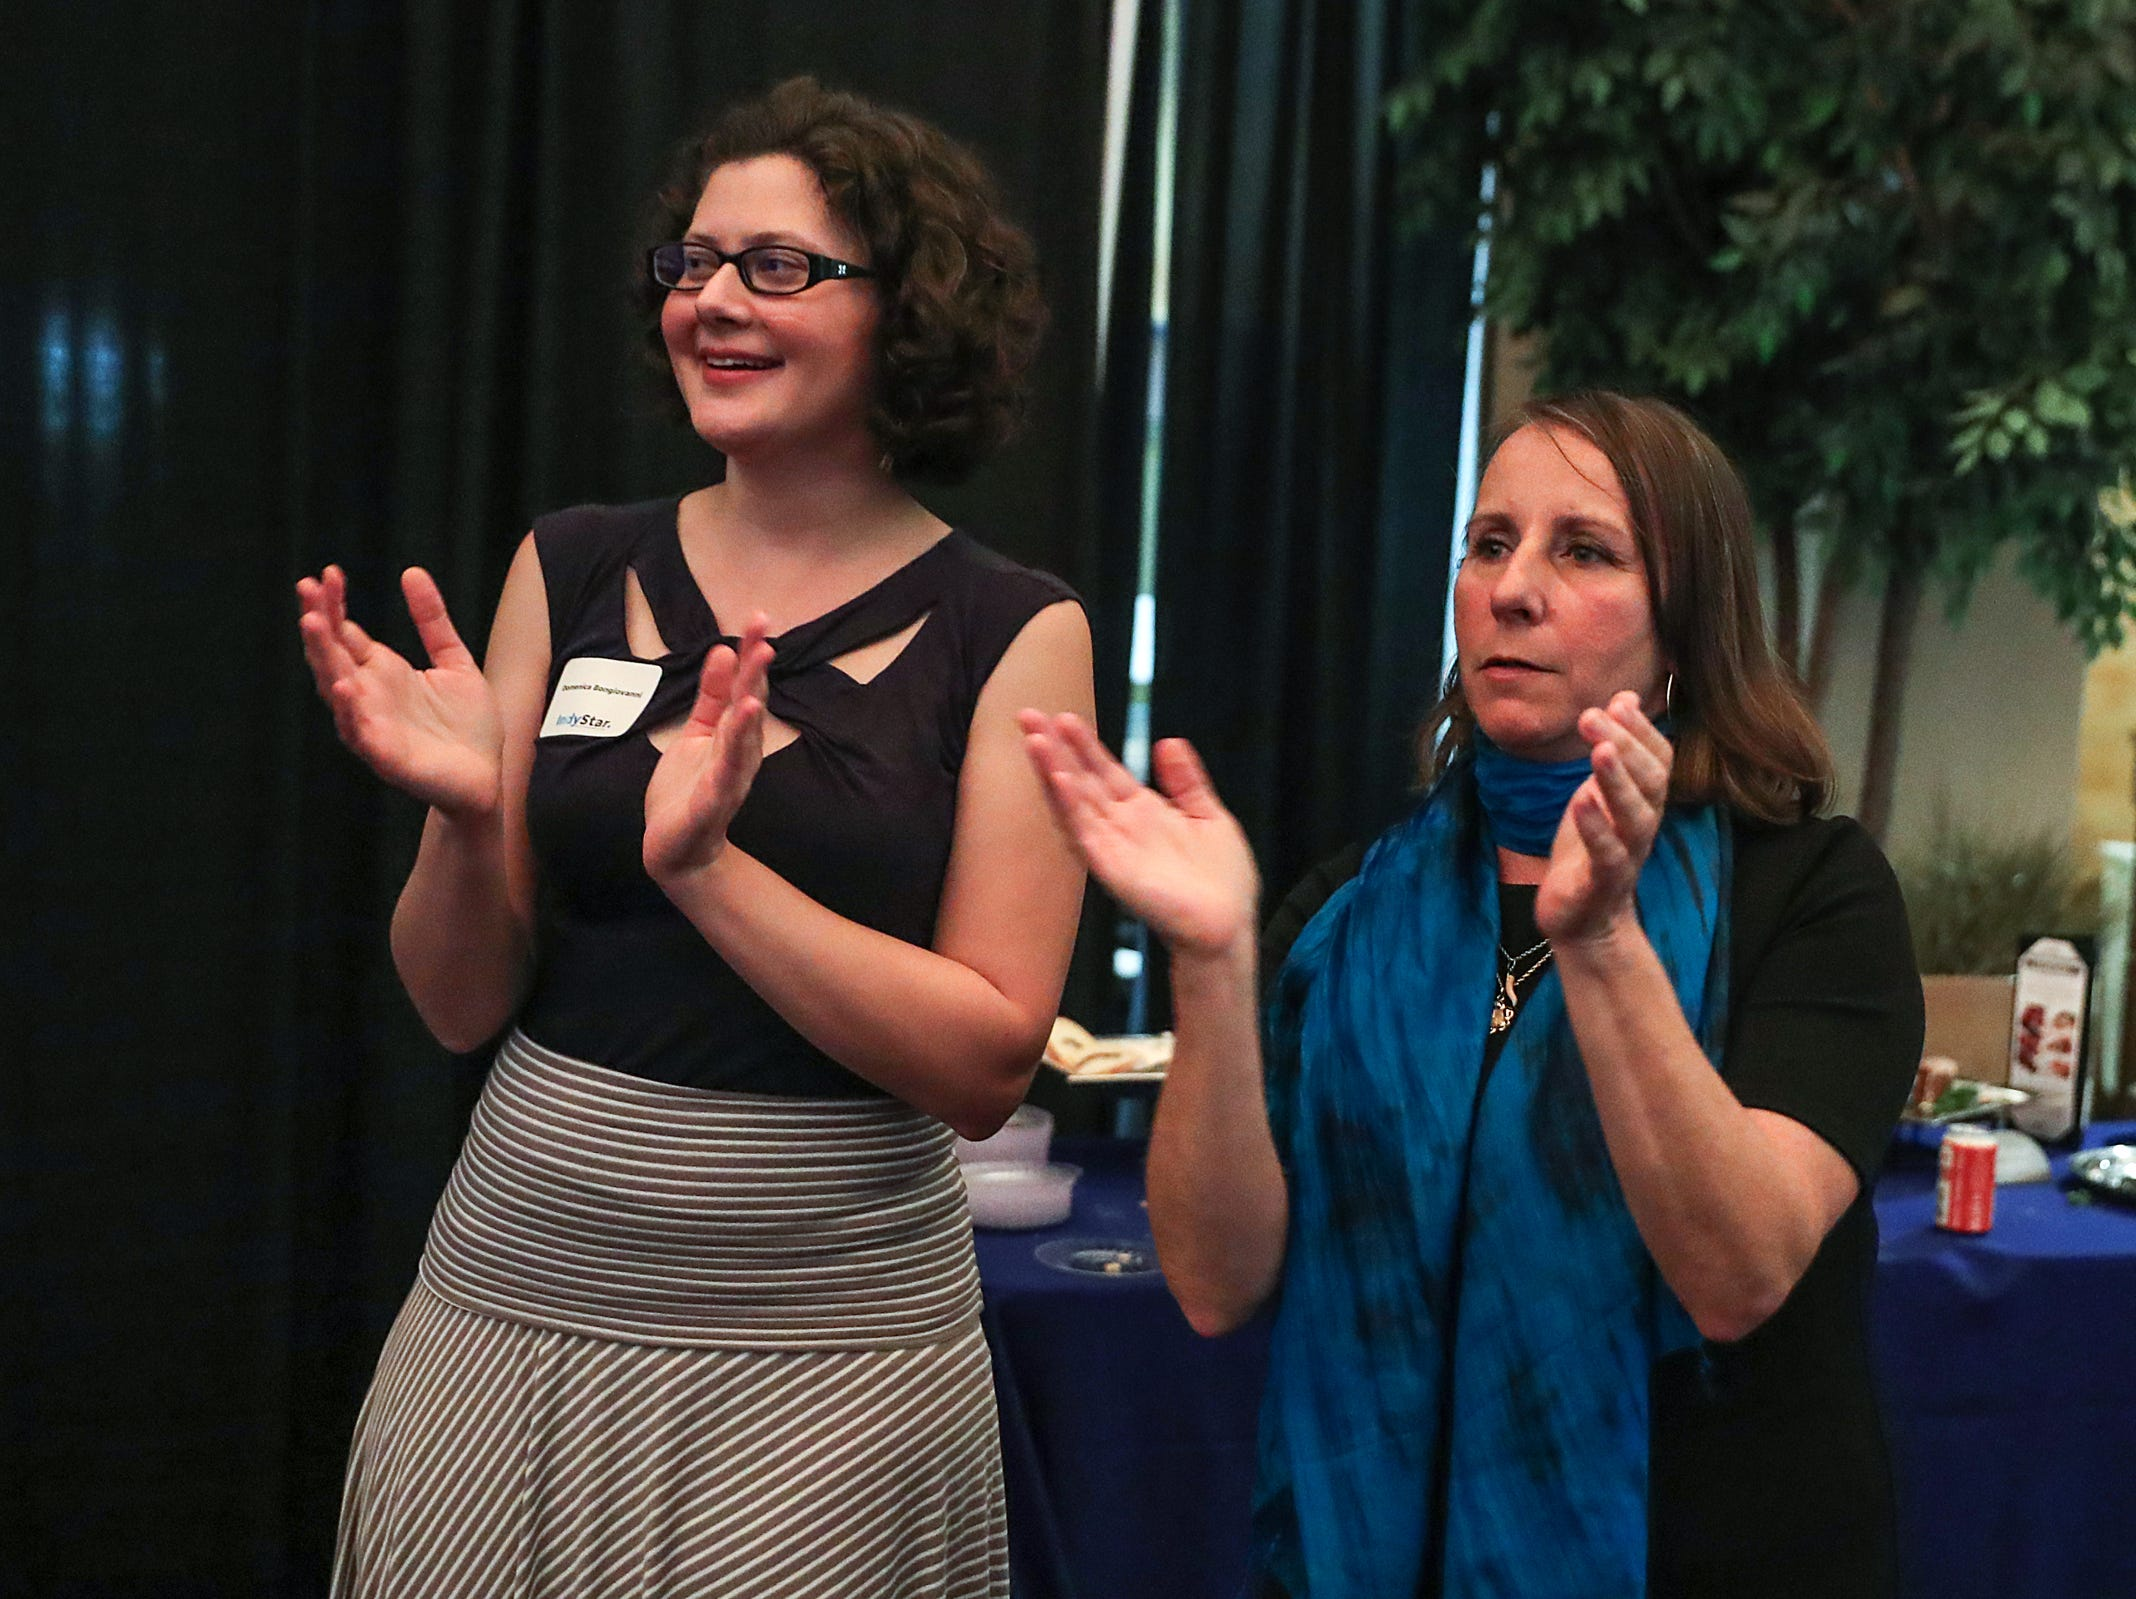 From left, IndyStar arts reporter Domenica Bongiovanni and food writer Liz Biro clap for winners during the inaugural Best Things Indy 2018 award ceremony, held by IndyStar at One America Tower in Indianapolis, Thursday, Sept. 27, 2018.